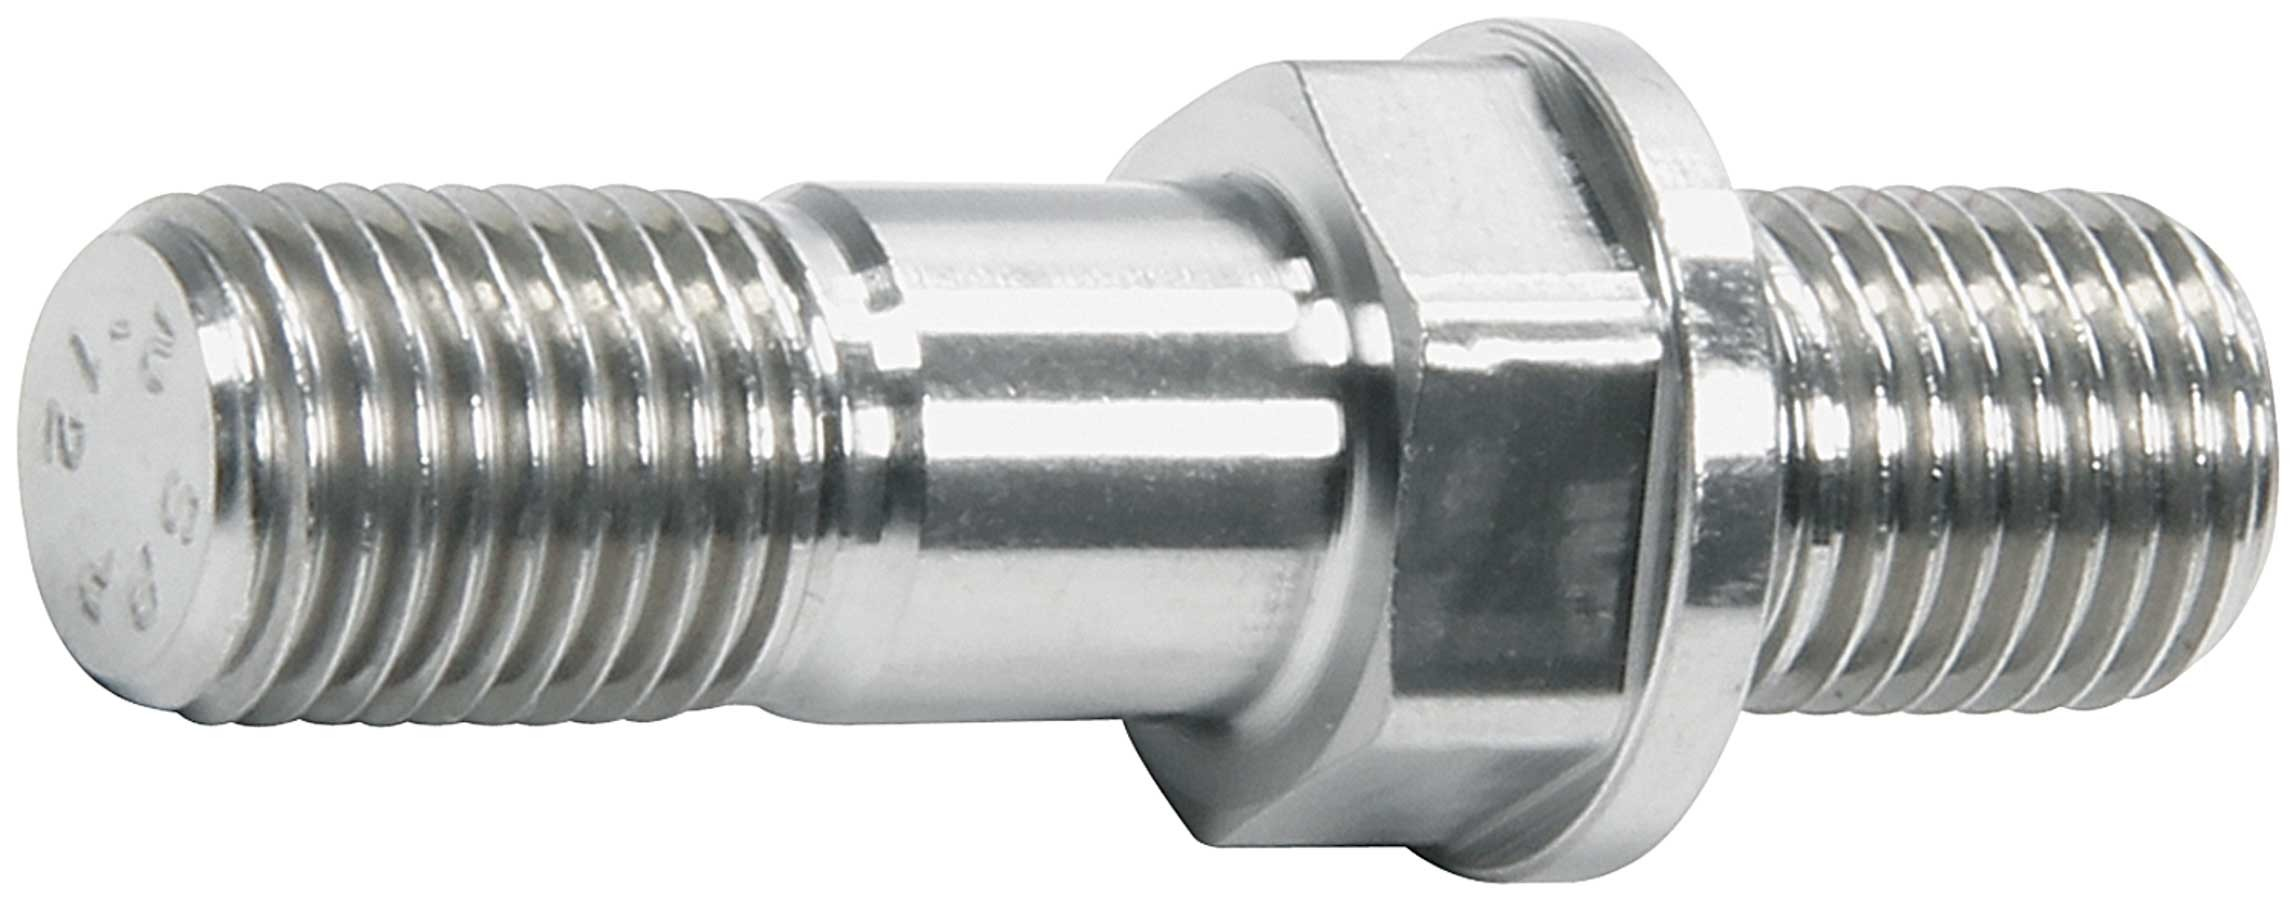 Wing Cylinder Stud 3/8-24x3/8-24x1.600in